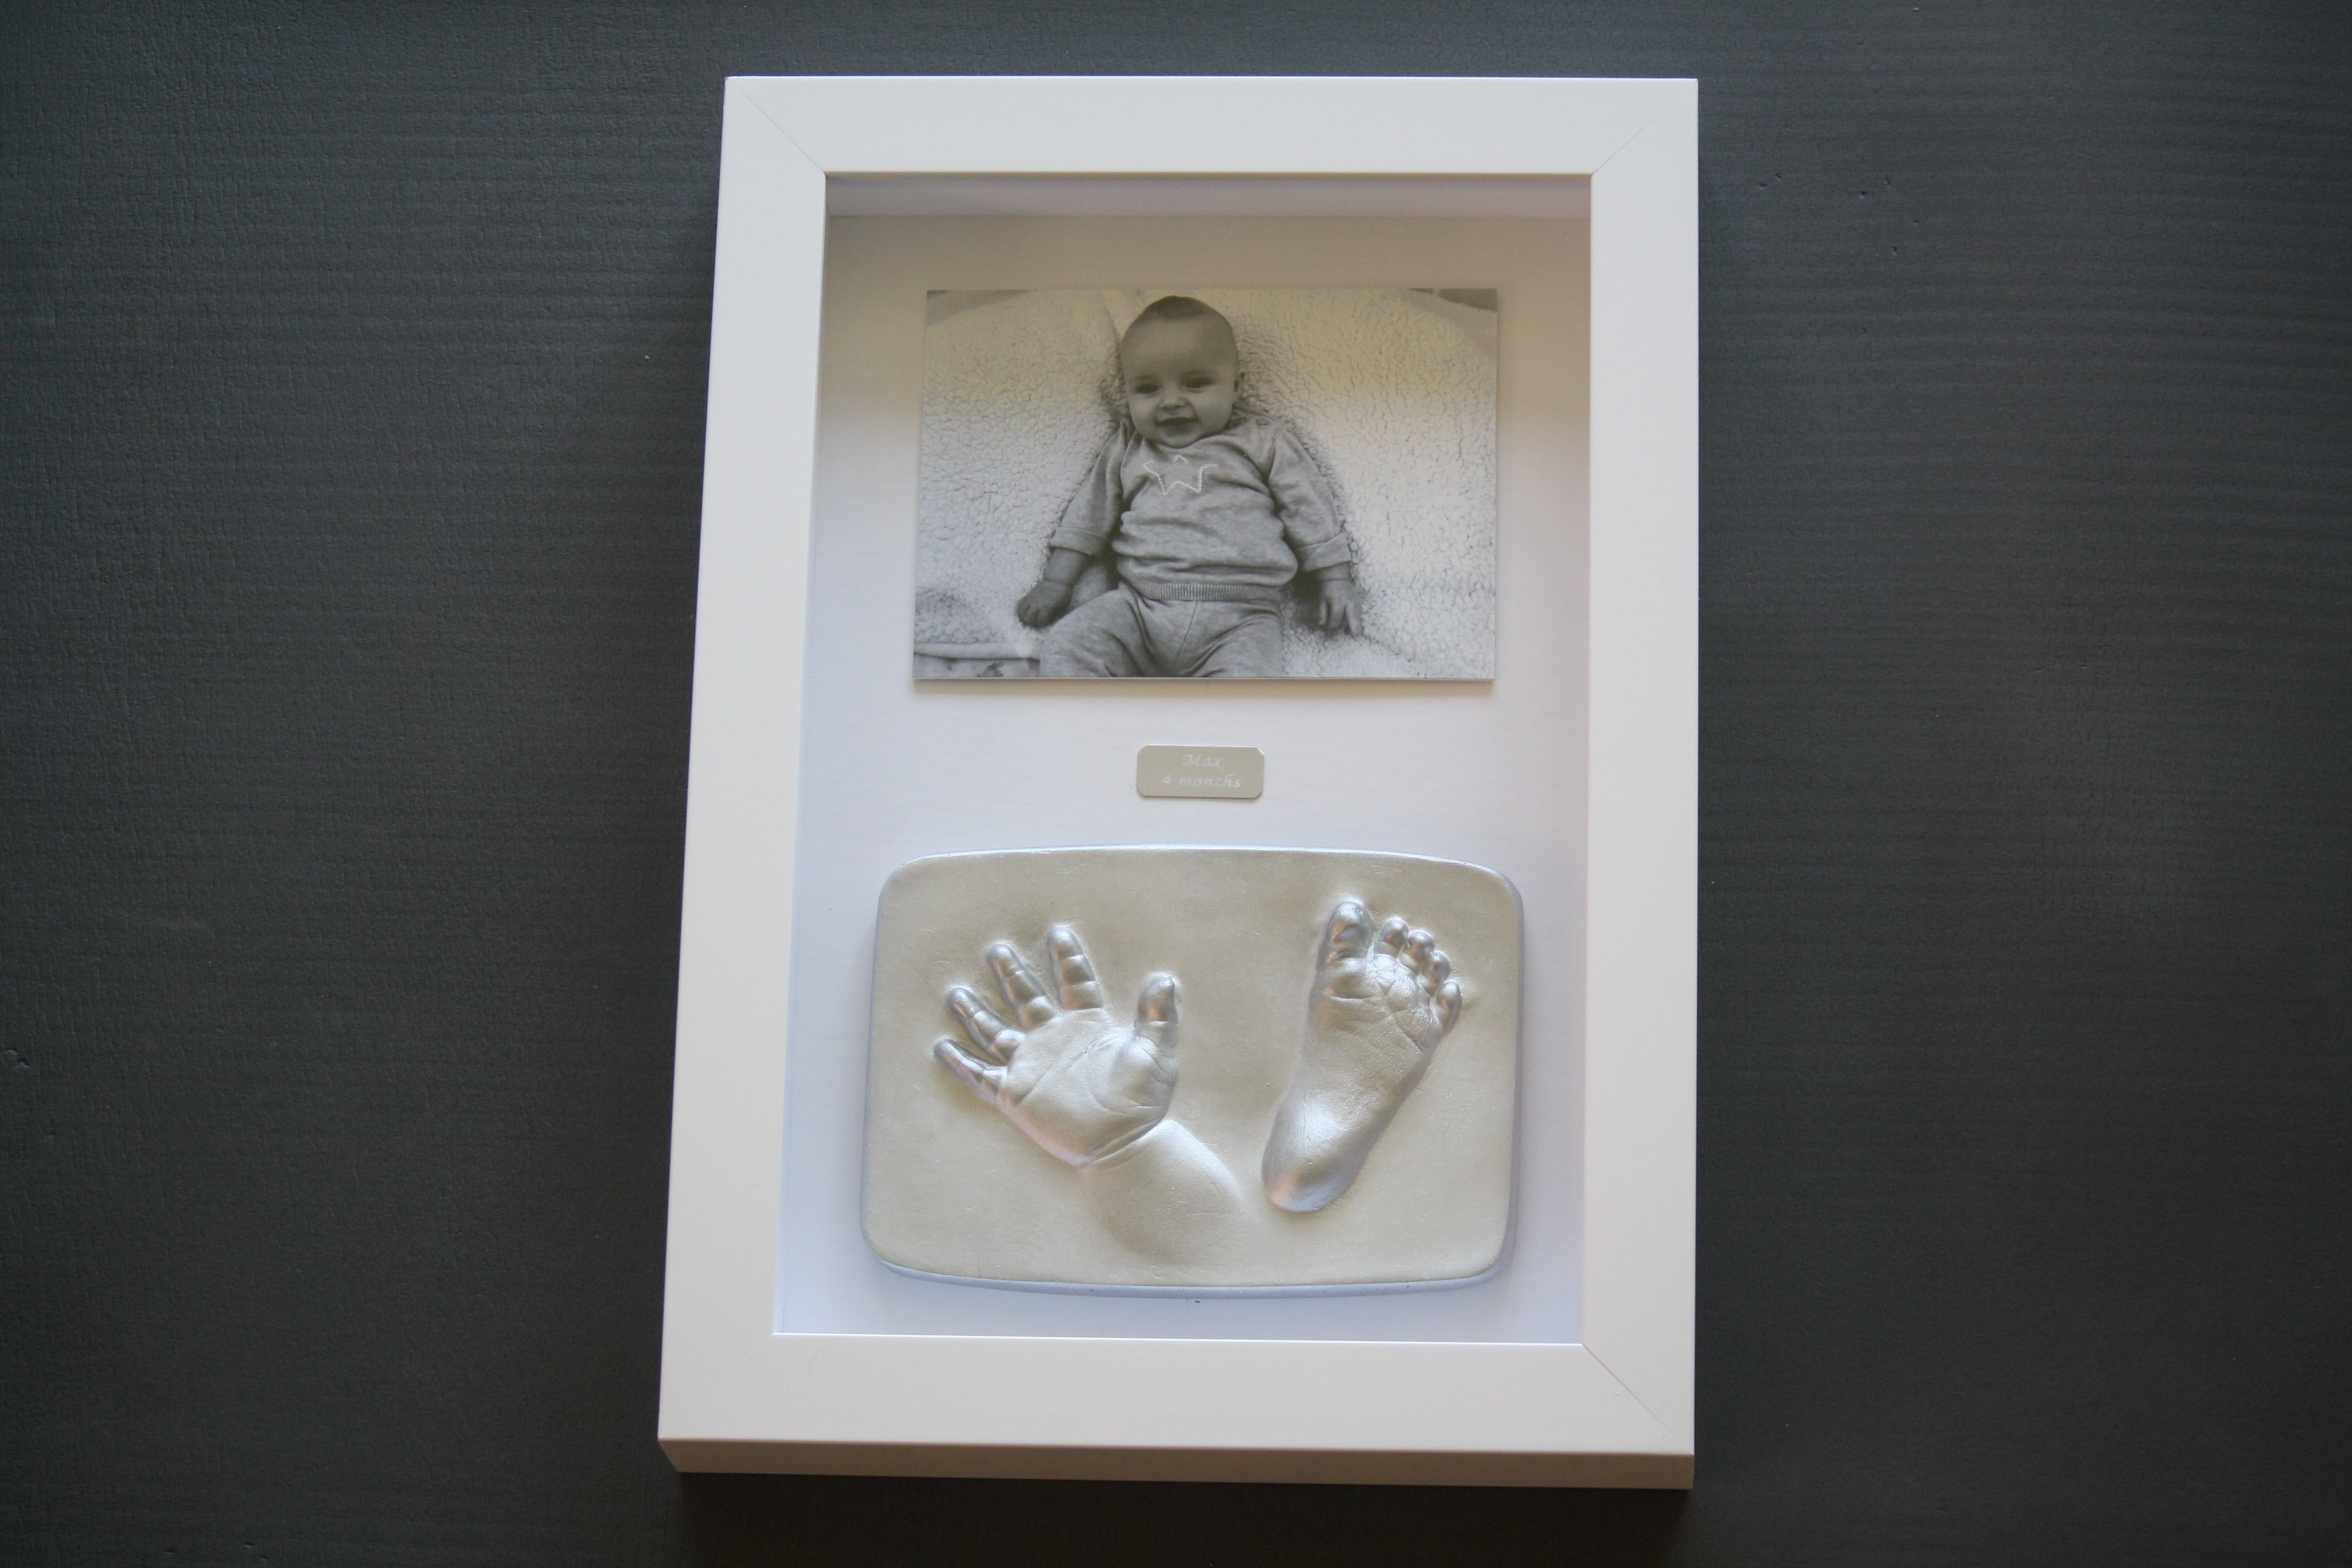 2d hand and foot impression tile in nursery frame with photo